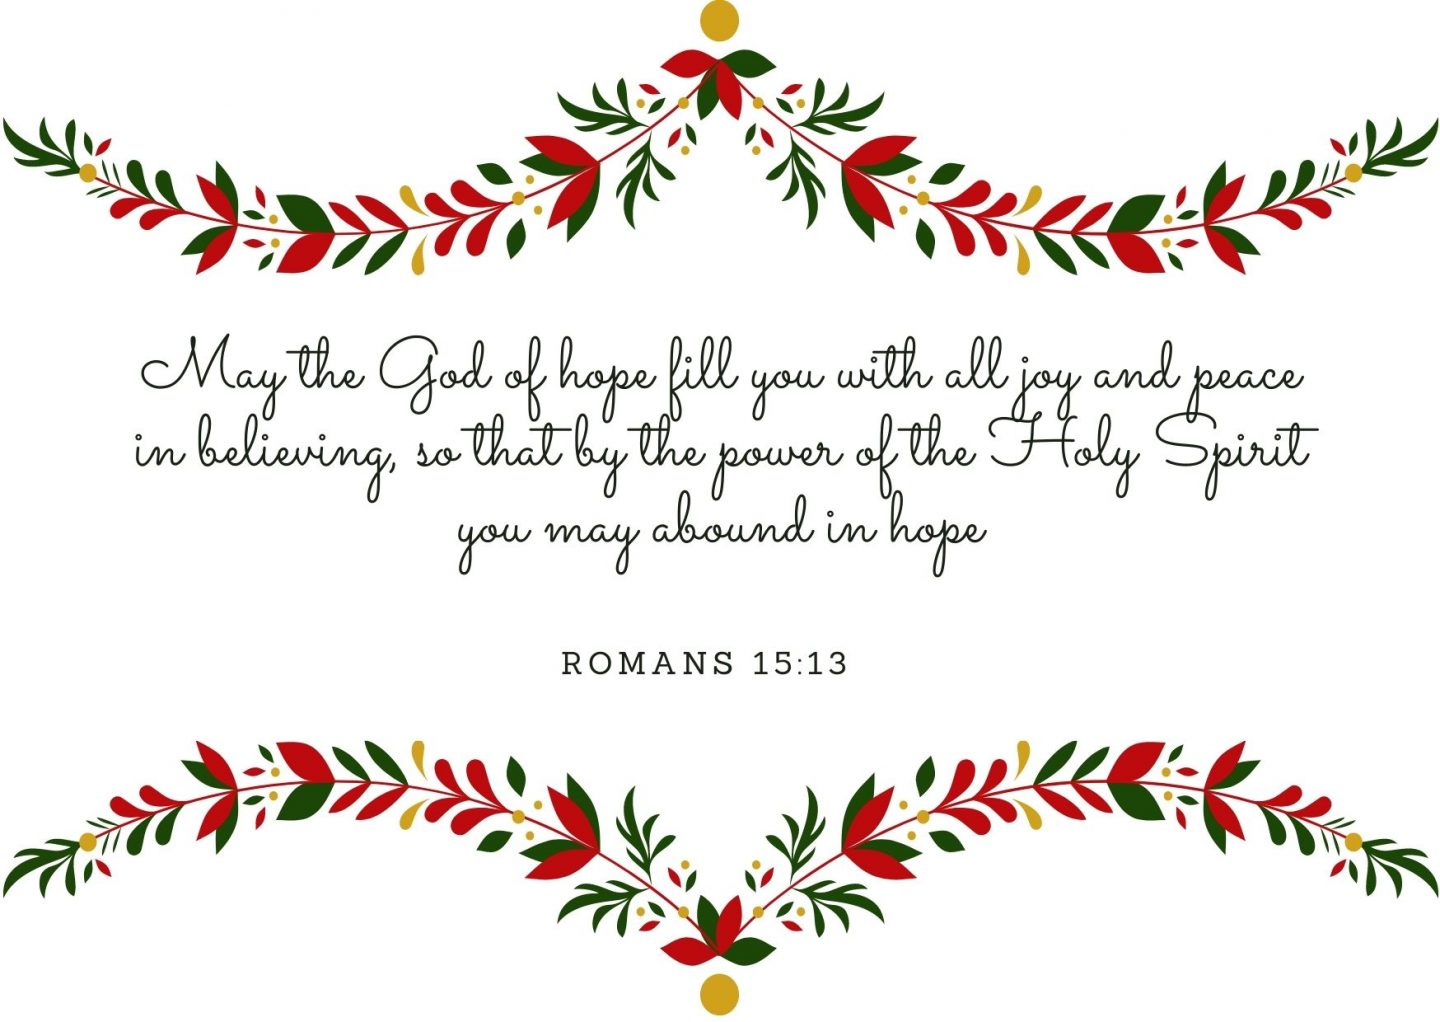 May the God of hope fill you with all joy and peace in believing, so that by the power of the Holy Spirit you may abound in hope. Romans 15:13